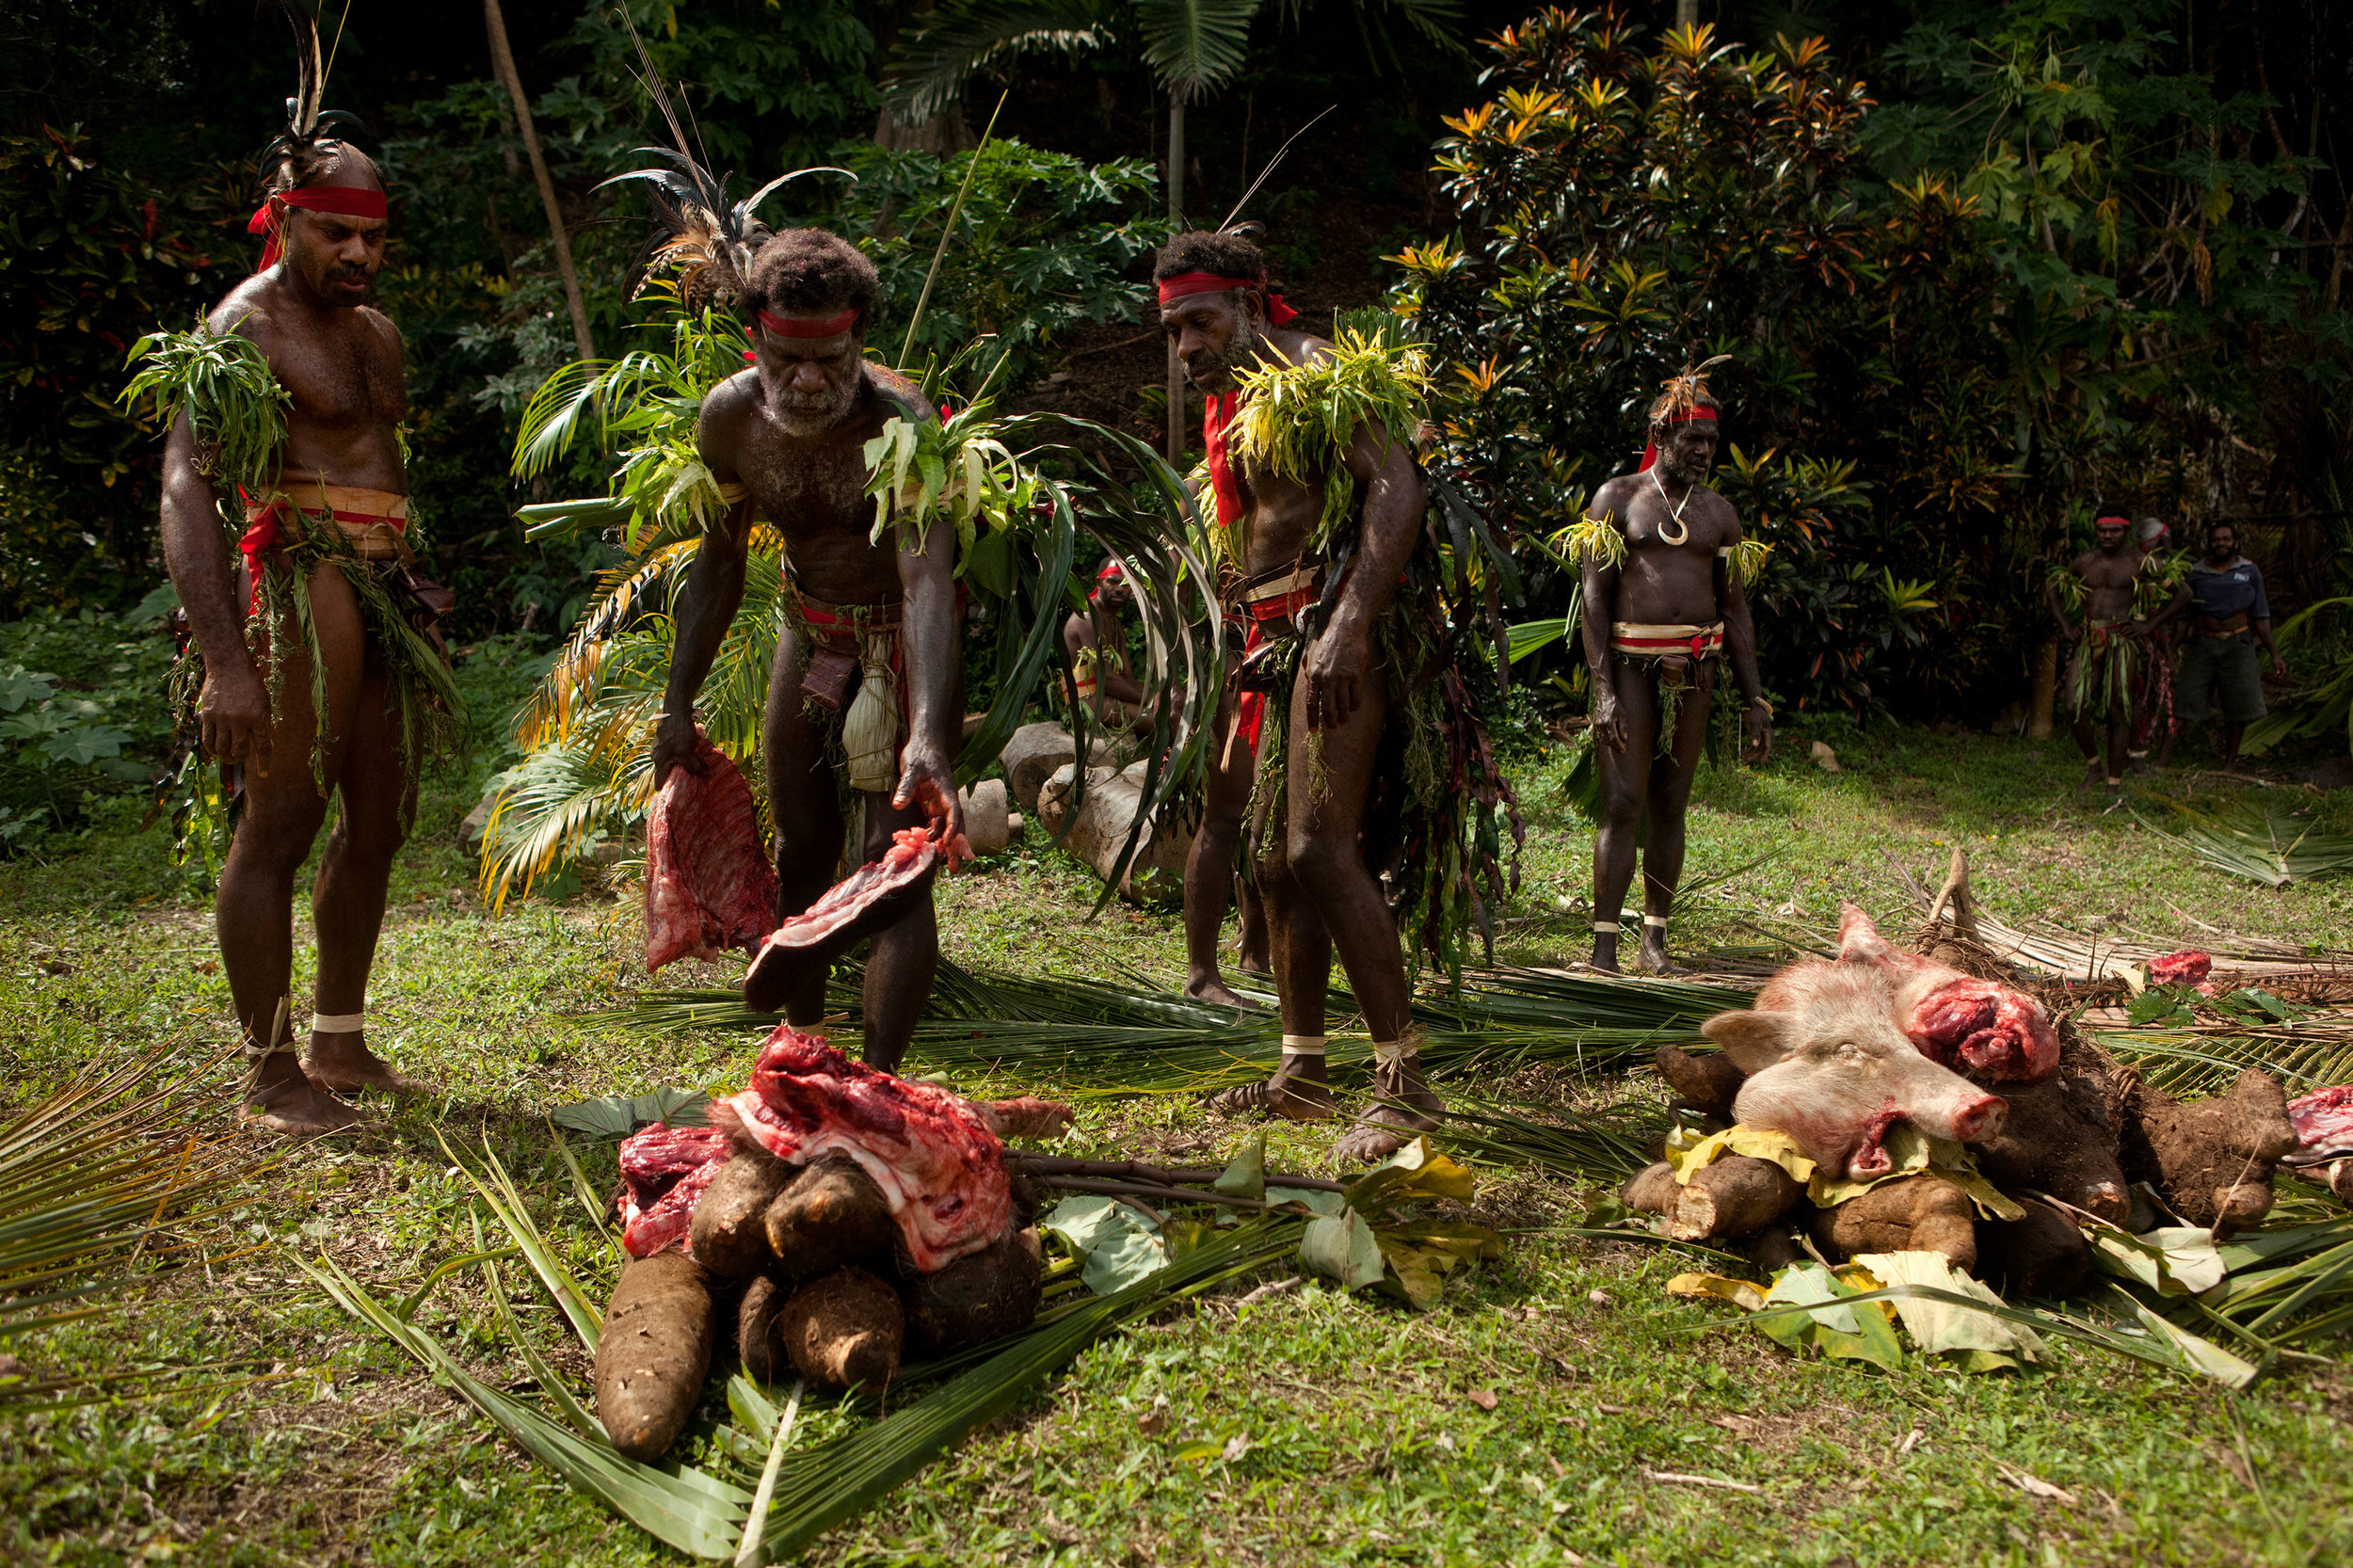 South West Bay chiefs distributing pig meat at Nalawan festival and grade-taking ceremony.